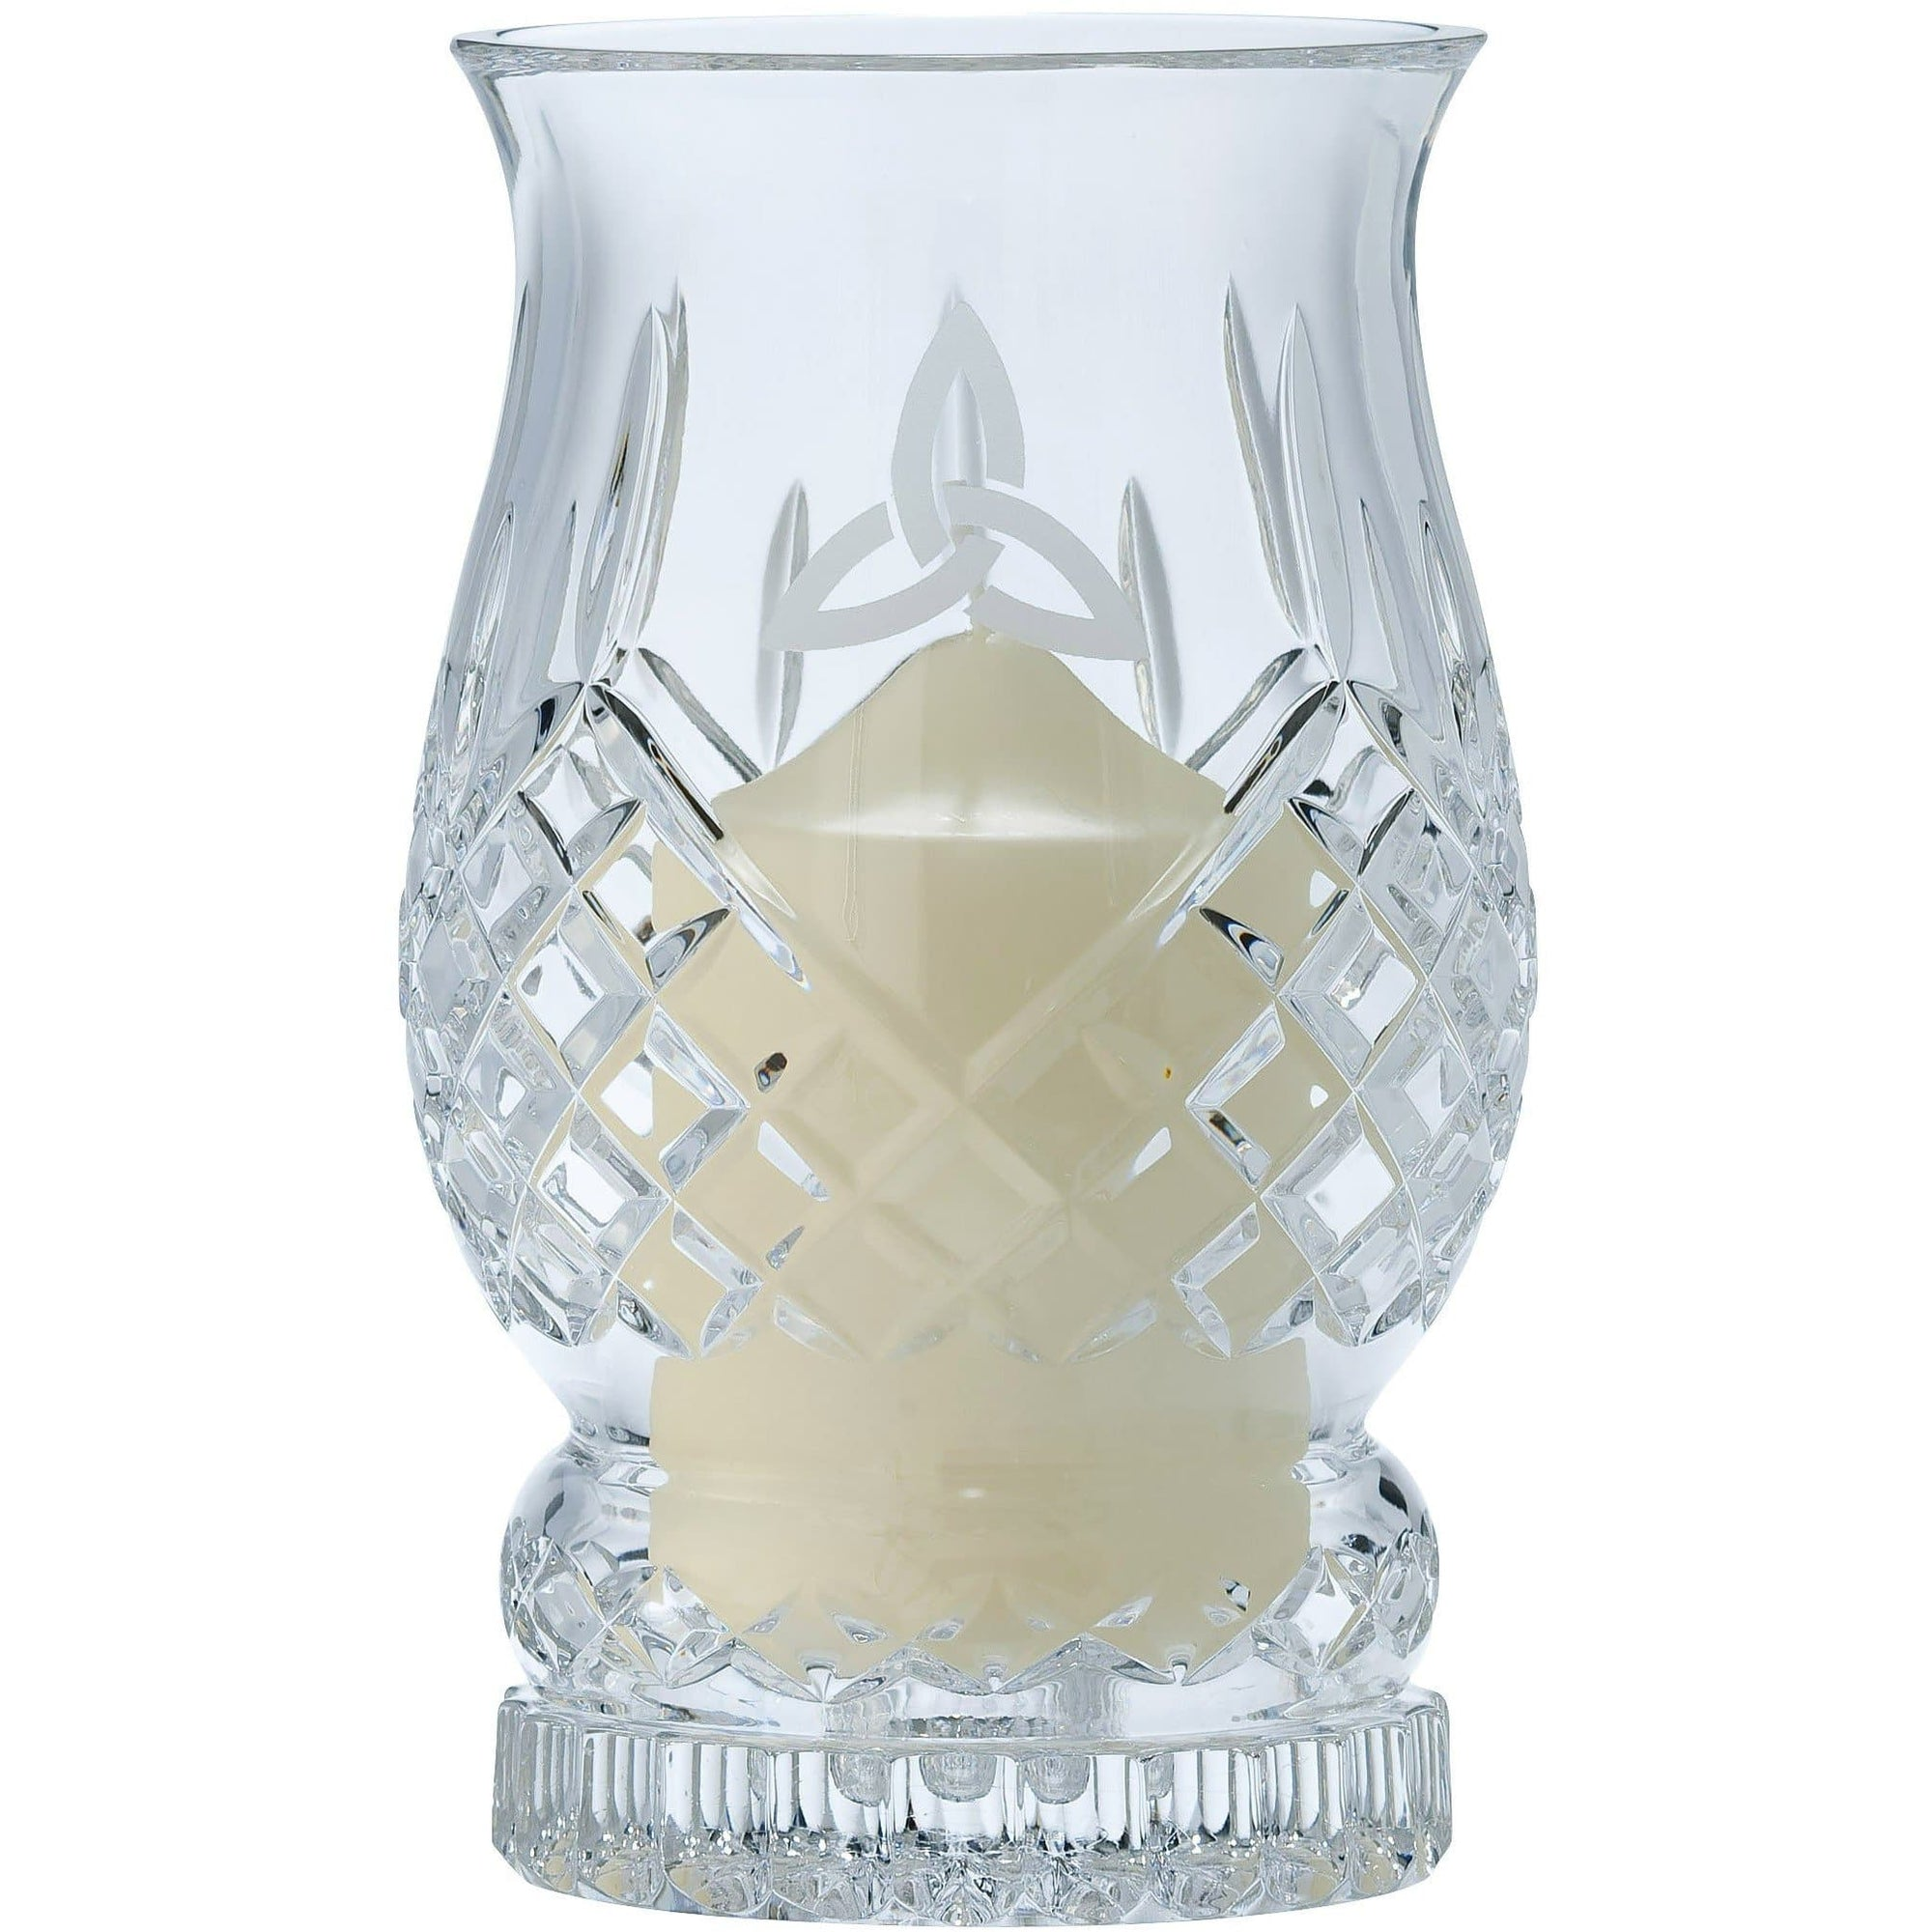 Trinity Knot Hurricane Lamp - Galway Irish Crystal